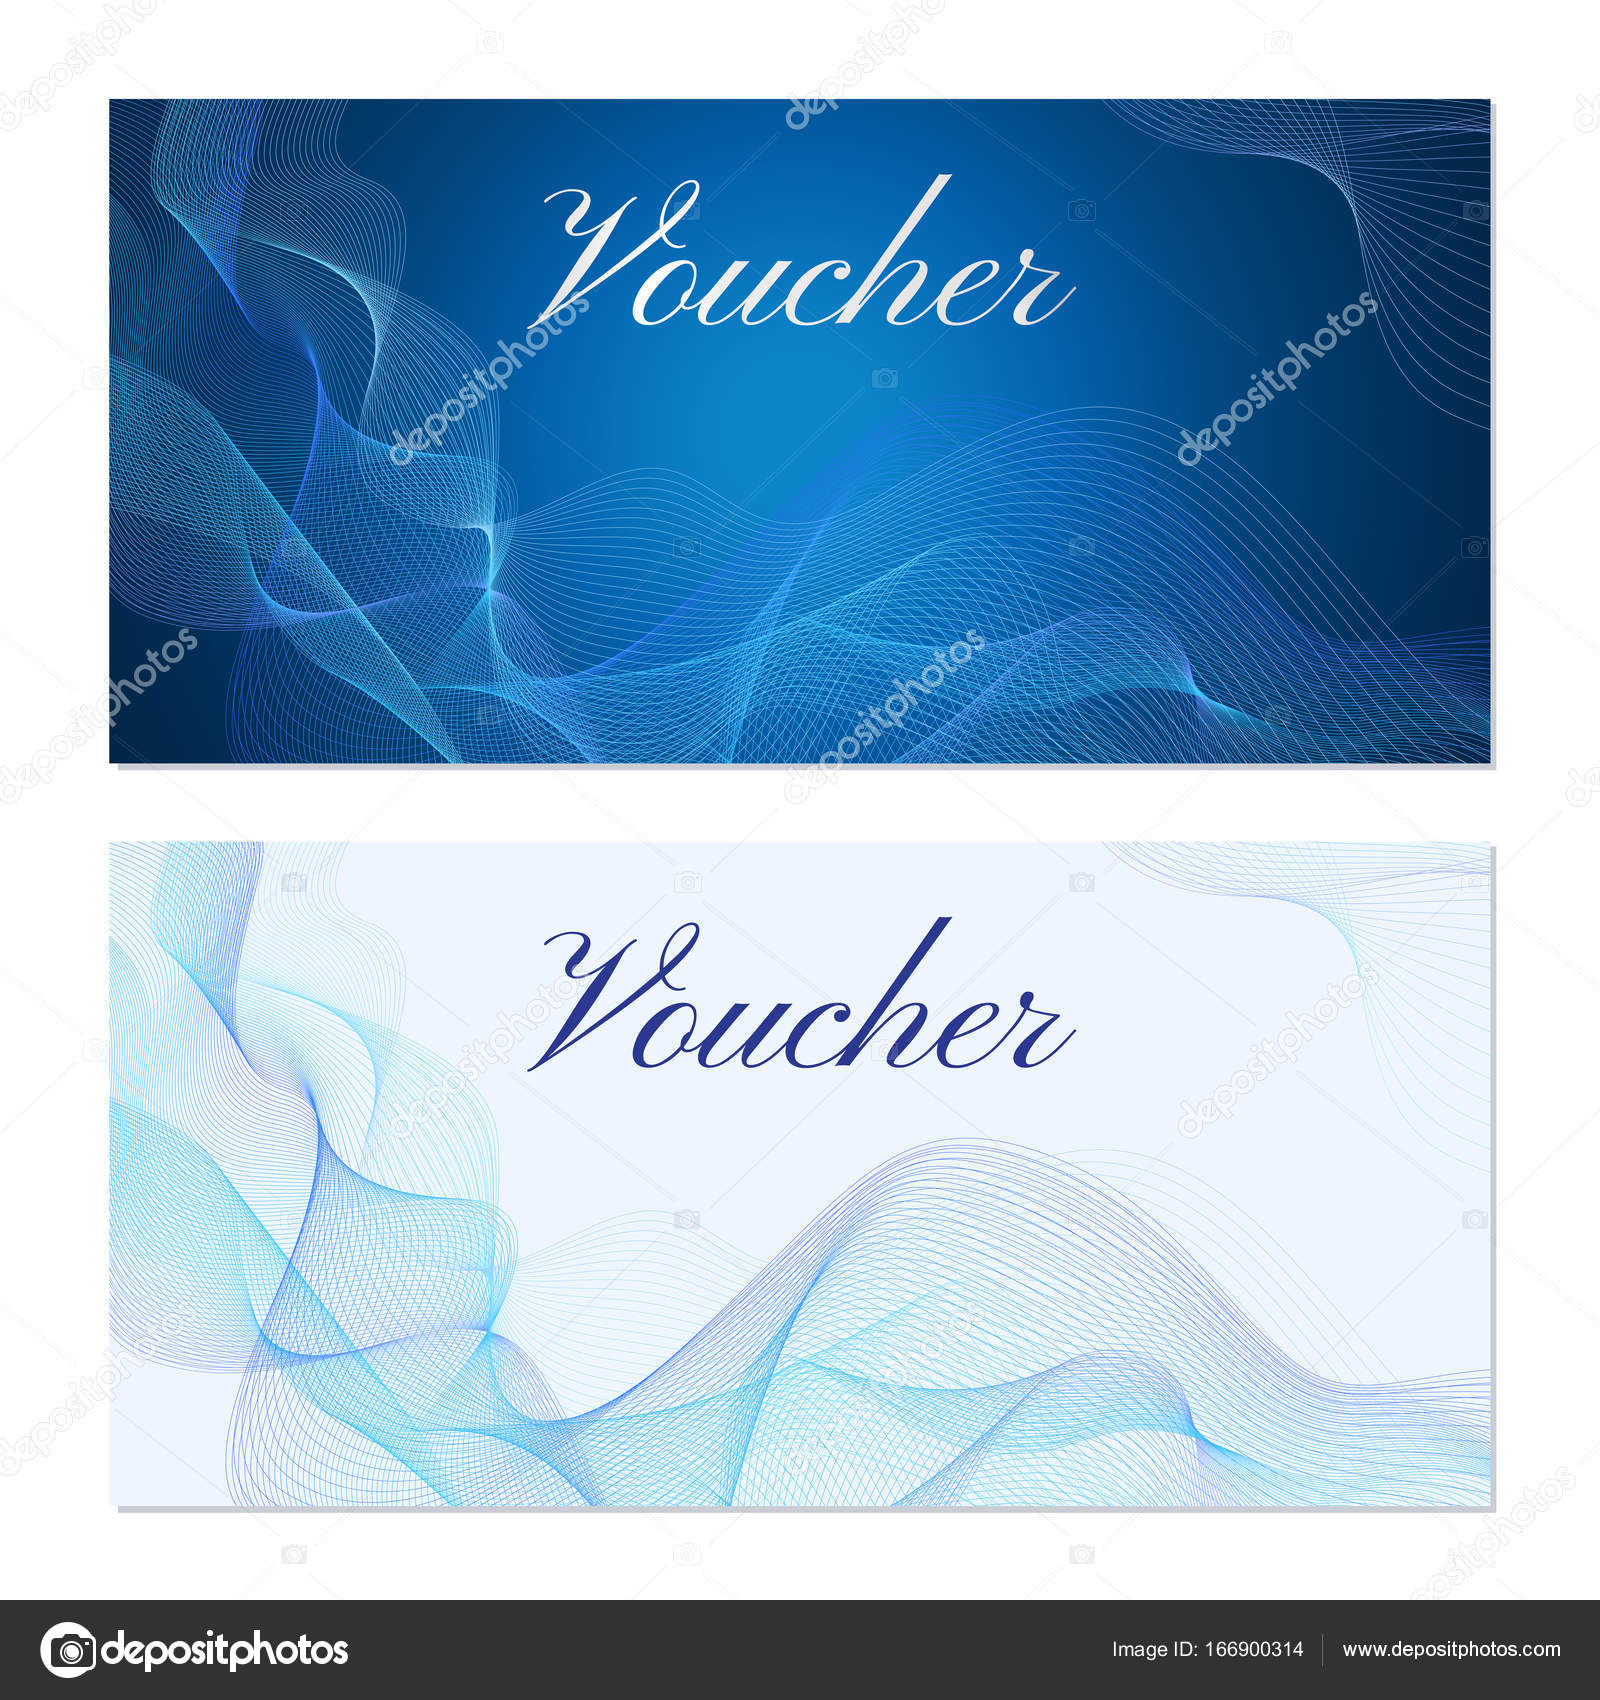 PrintVoucher, Gift Certificate, Coupon Template. Guilloche Pattern  (watermark, Blue Lines)  Coupon Template Download